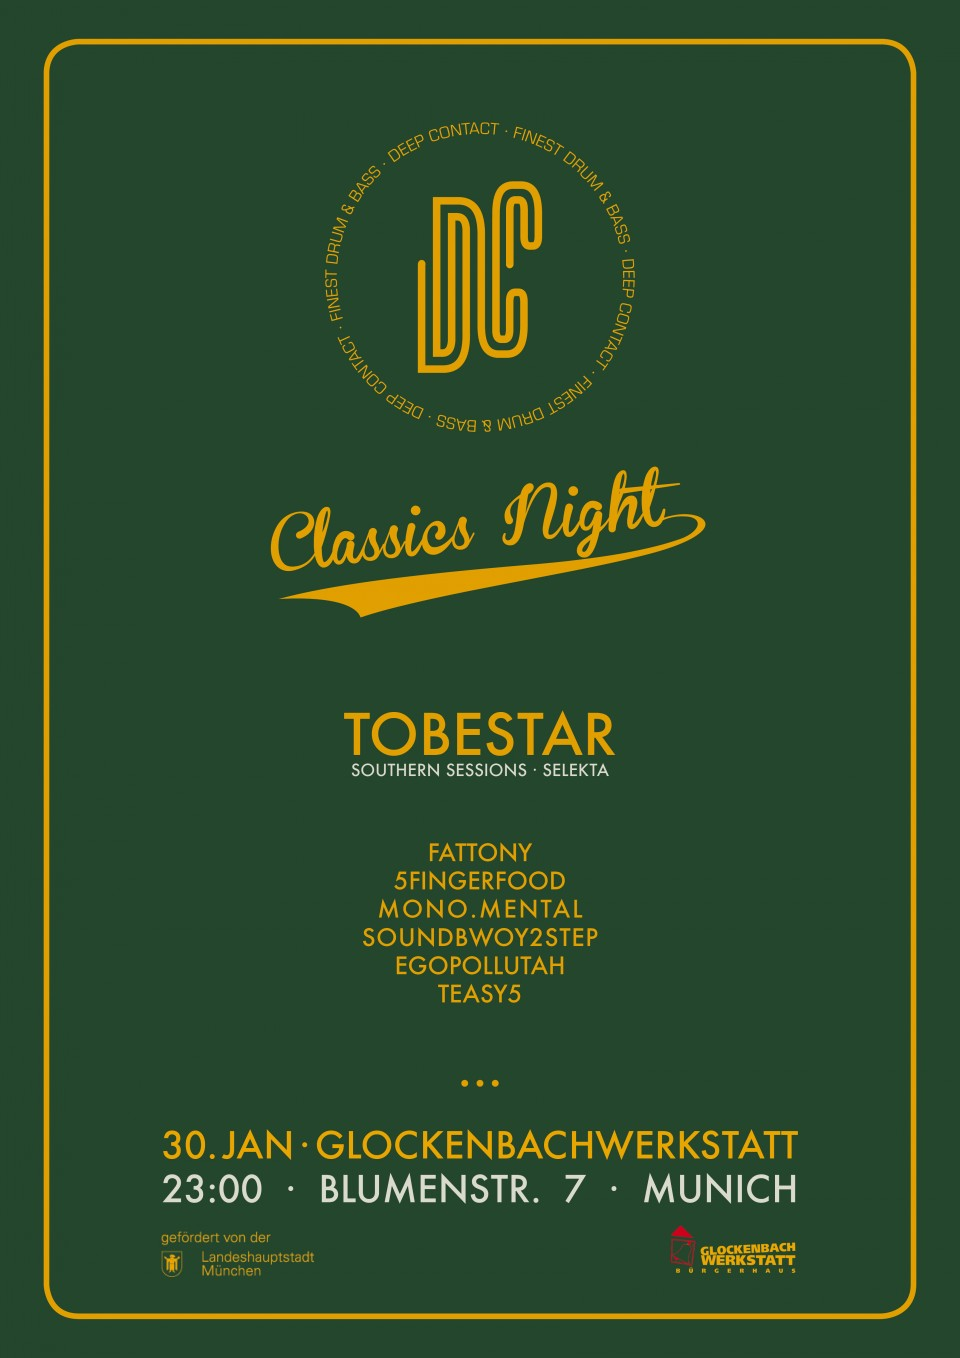 30.01.16 – Deep Contact Classics Night